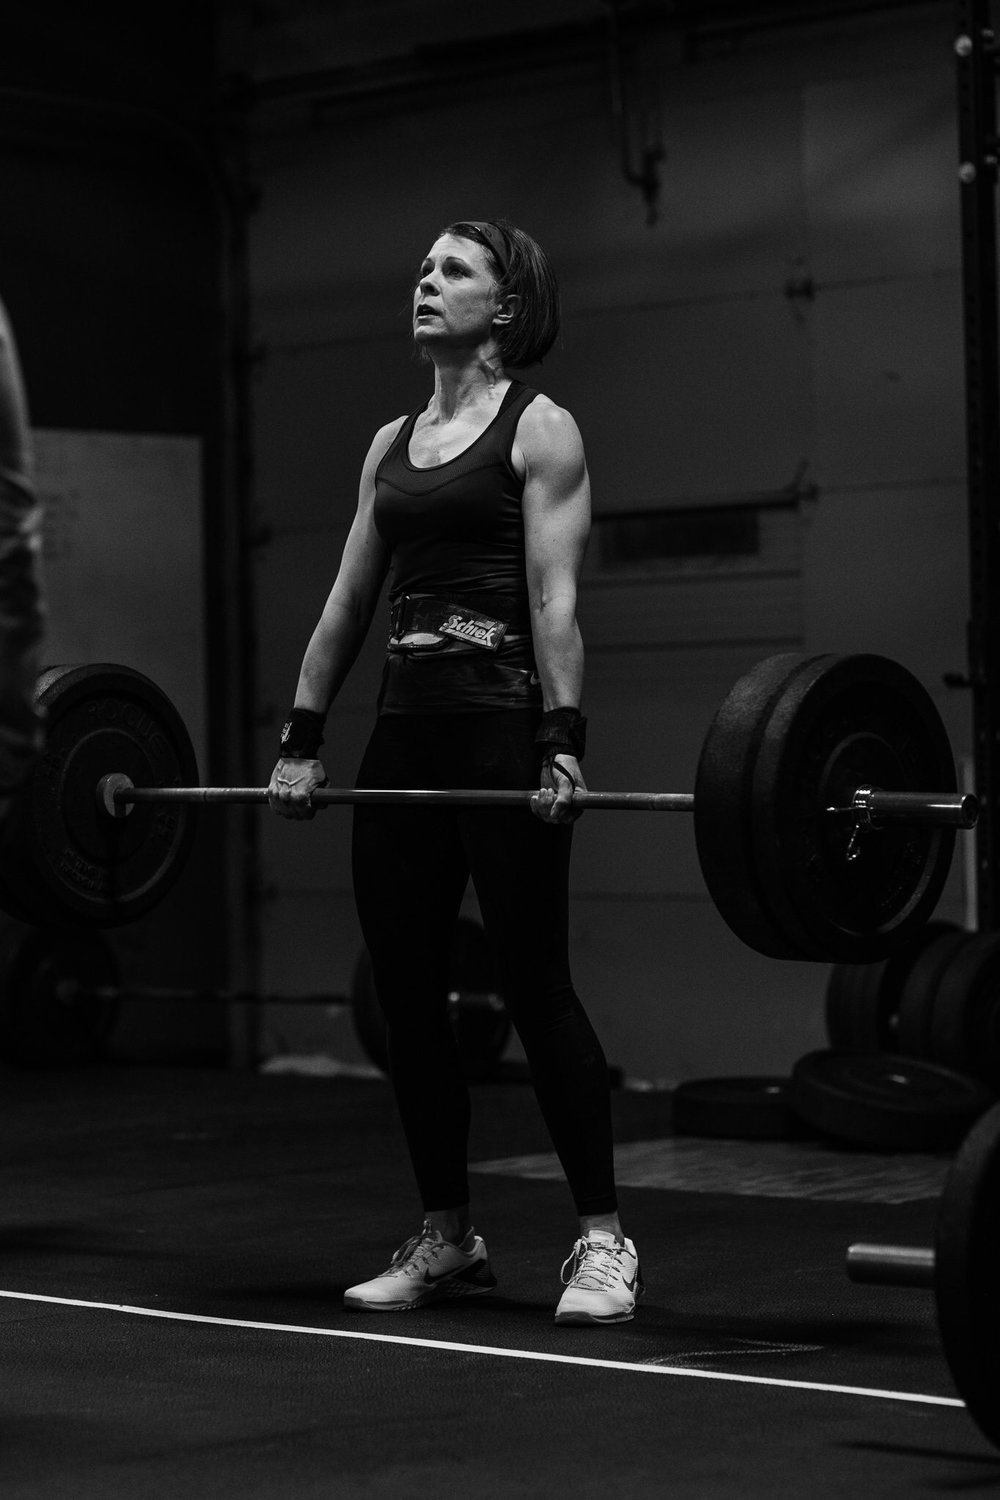 Class Times 4:30/5:15/8:30 & 4:00/6:00)  Mod: 4 Sets  20 Hip Ext  10 Weighted Single Leg step ups  10 Pendlay Row  5 Ring Dips  5 Strict TTB    Wod: Partner Wod  20-18-16-14-12-10--8-6-4-2 - Squat Cleans (105/155)  500m Row in between   Partners divide reps and row as desired